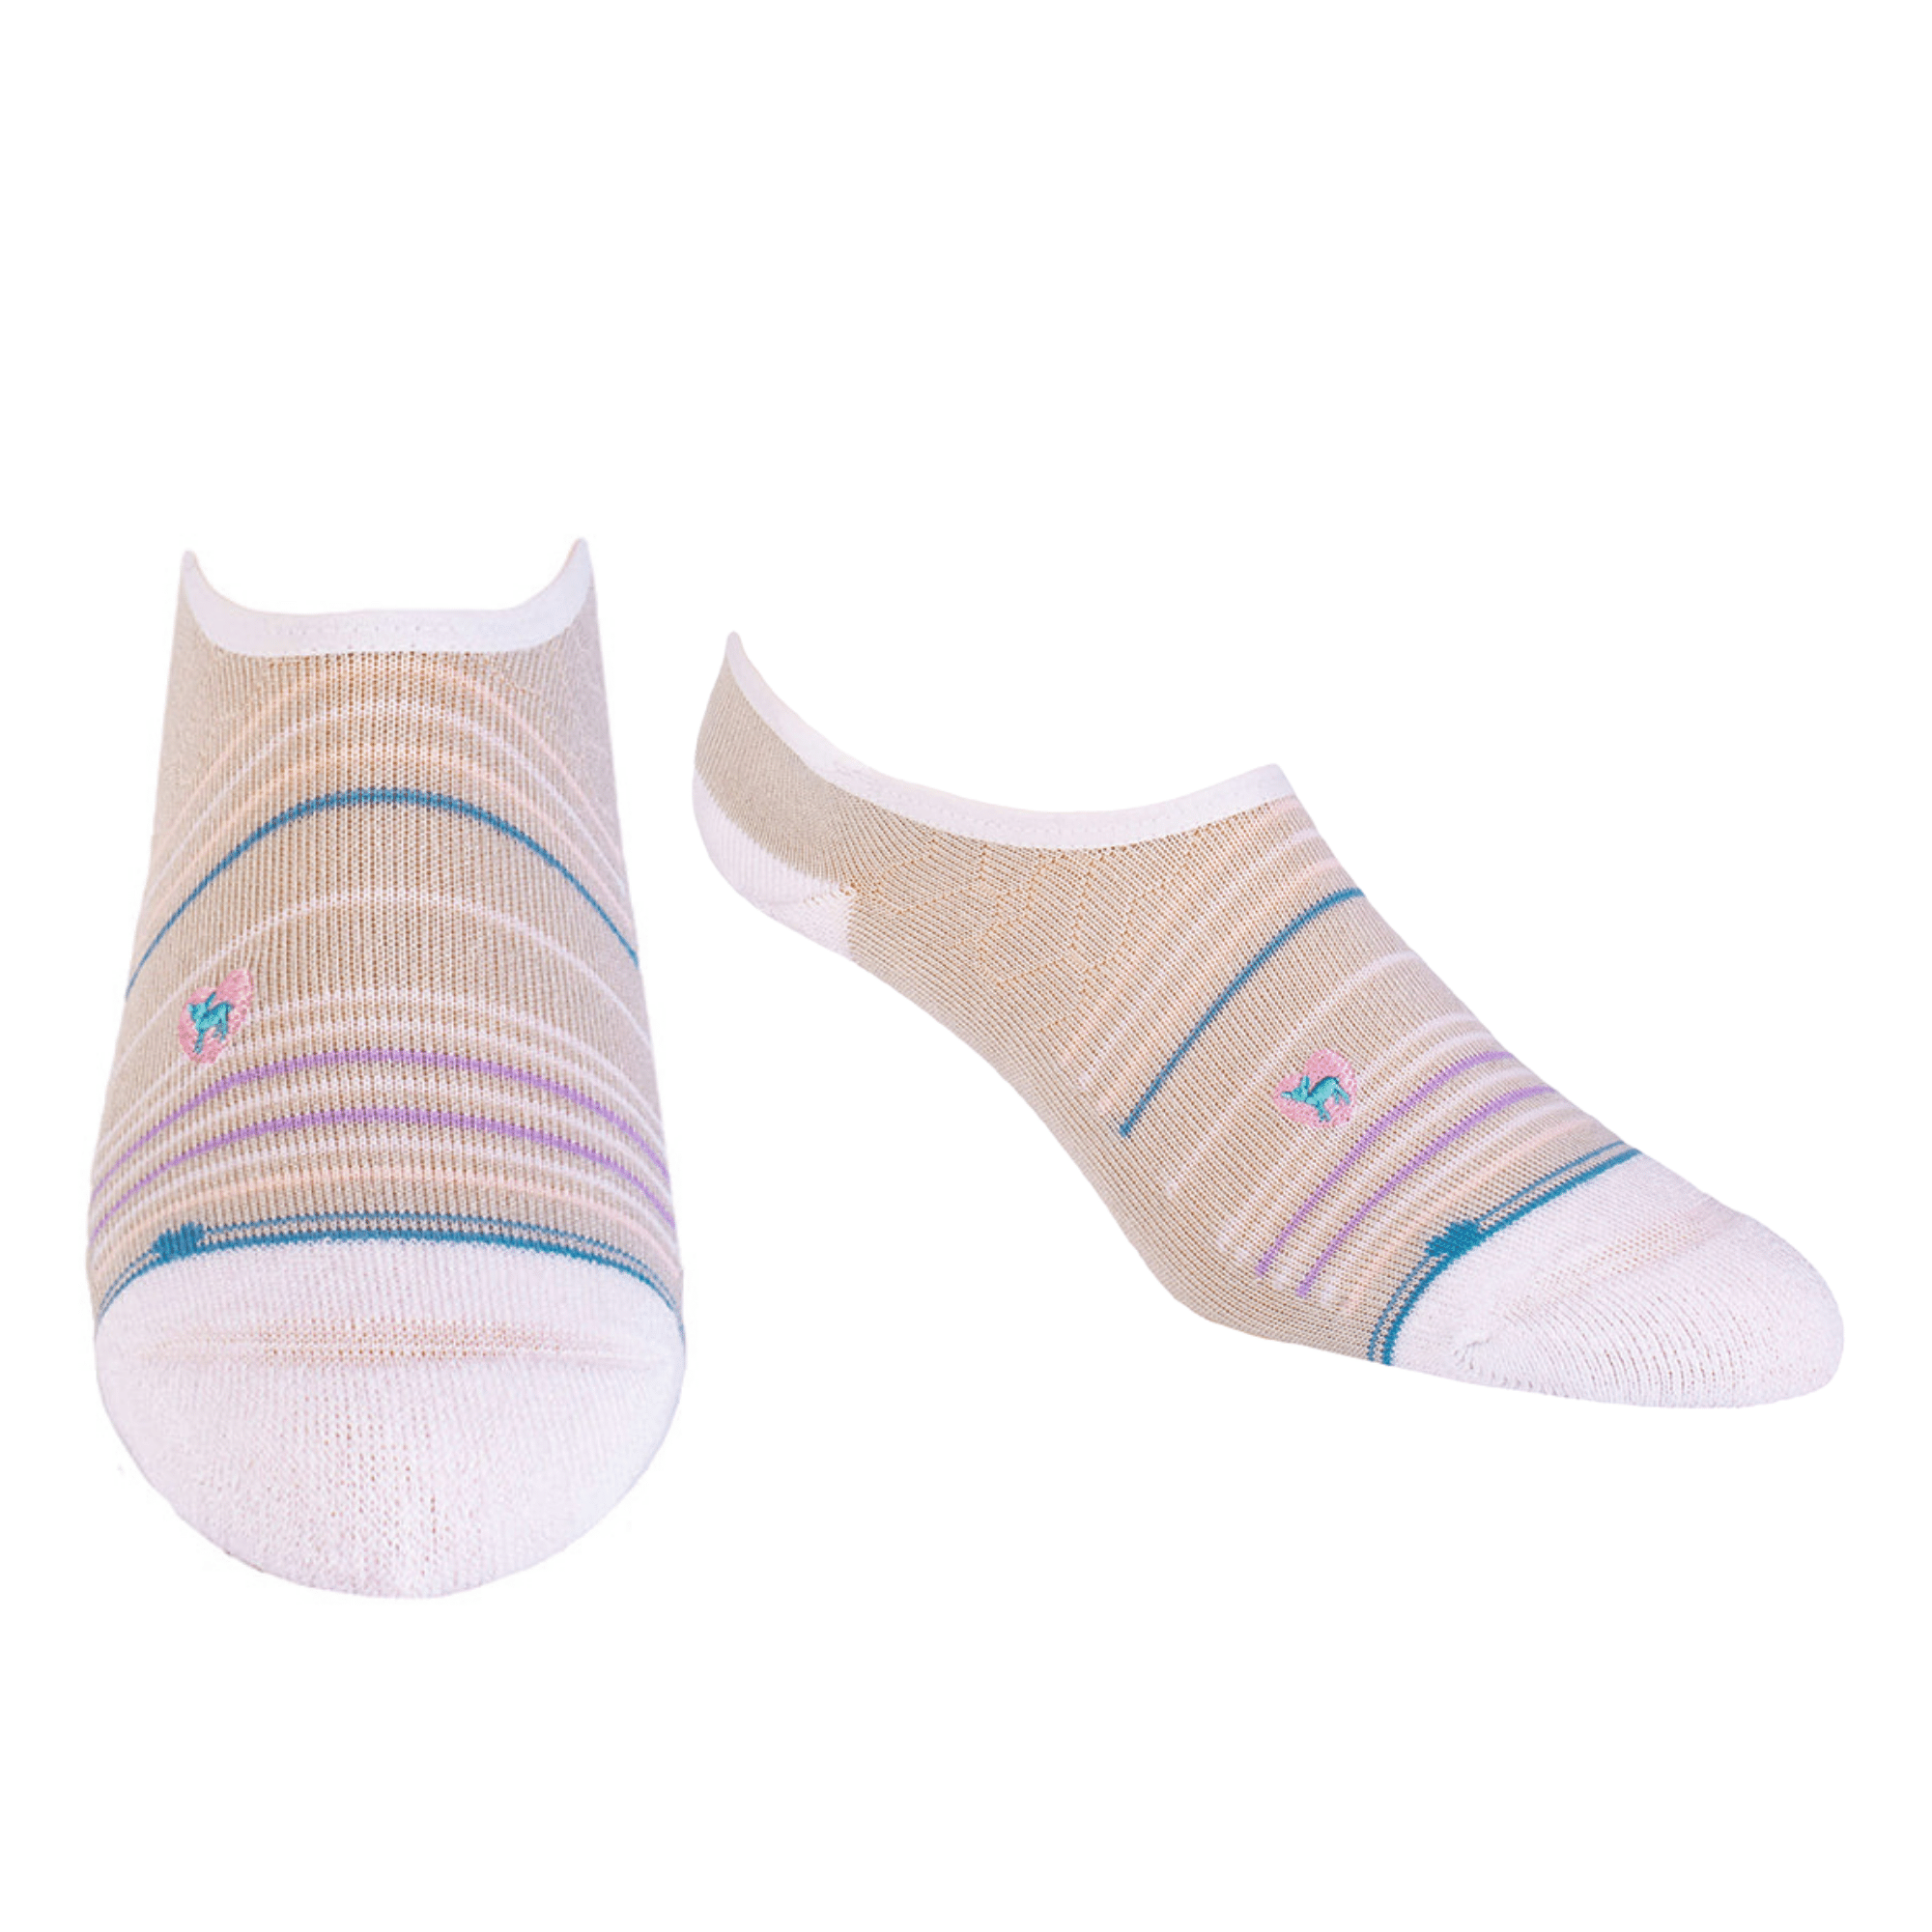 Bamboo Socks | No Fuss No-Show | Seaside Grey